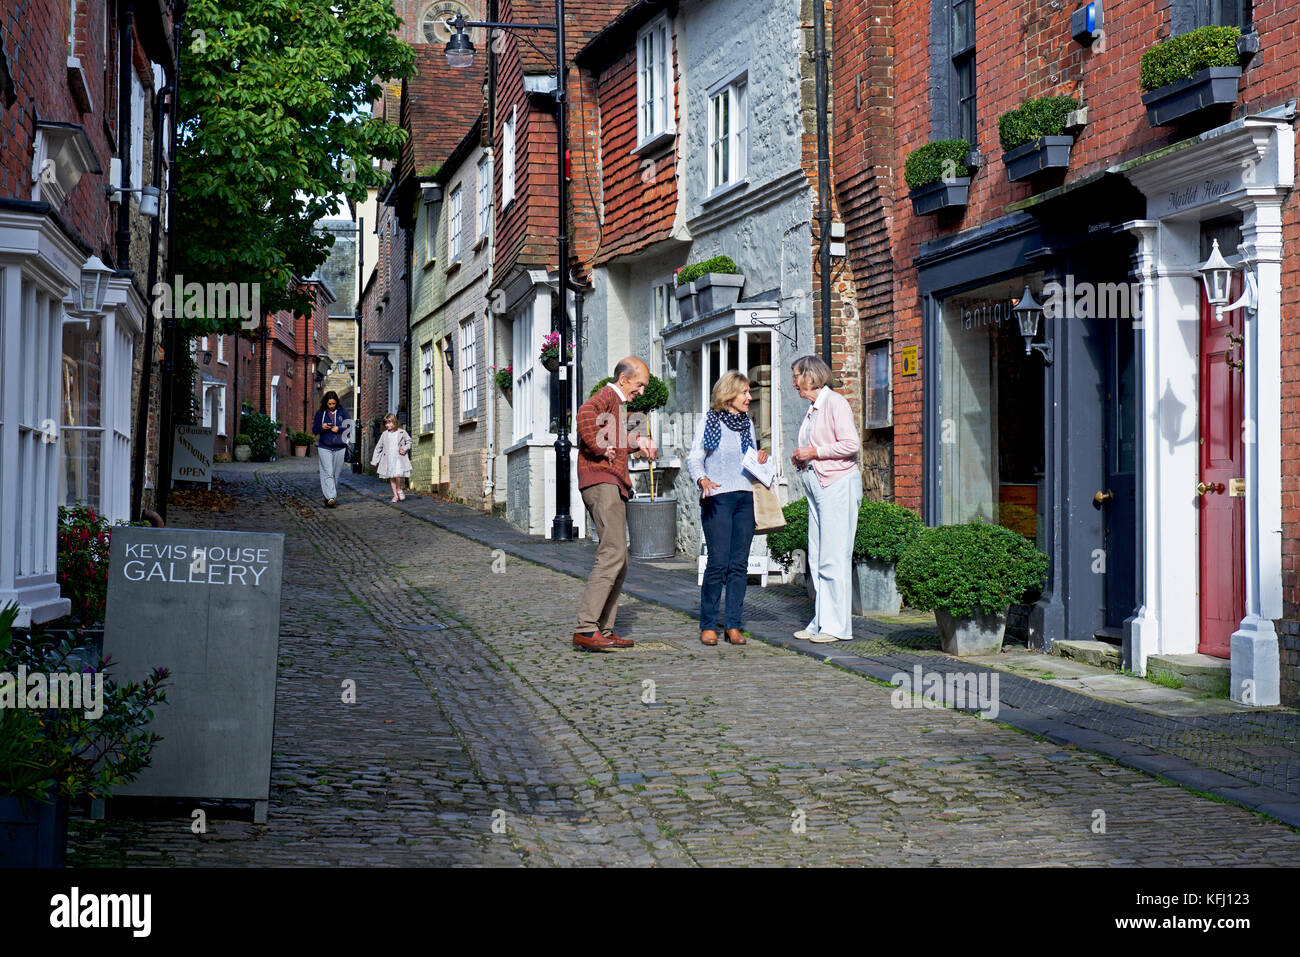 Conversation on cobbled Lombard Street in Petworth, a small town in West Sussex, England UK - Stock Image